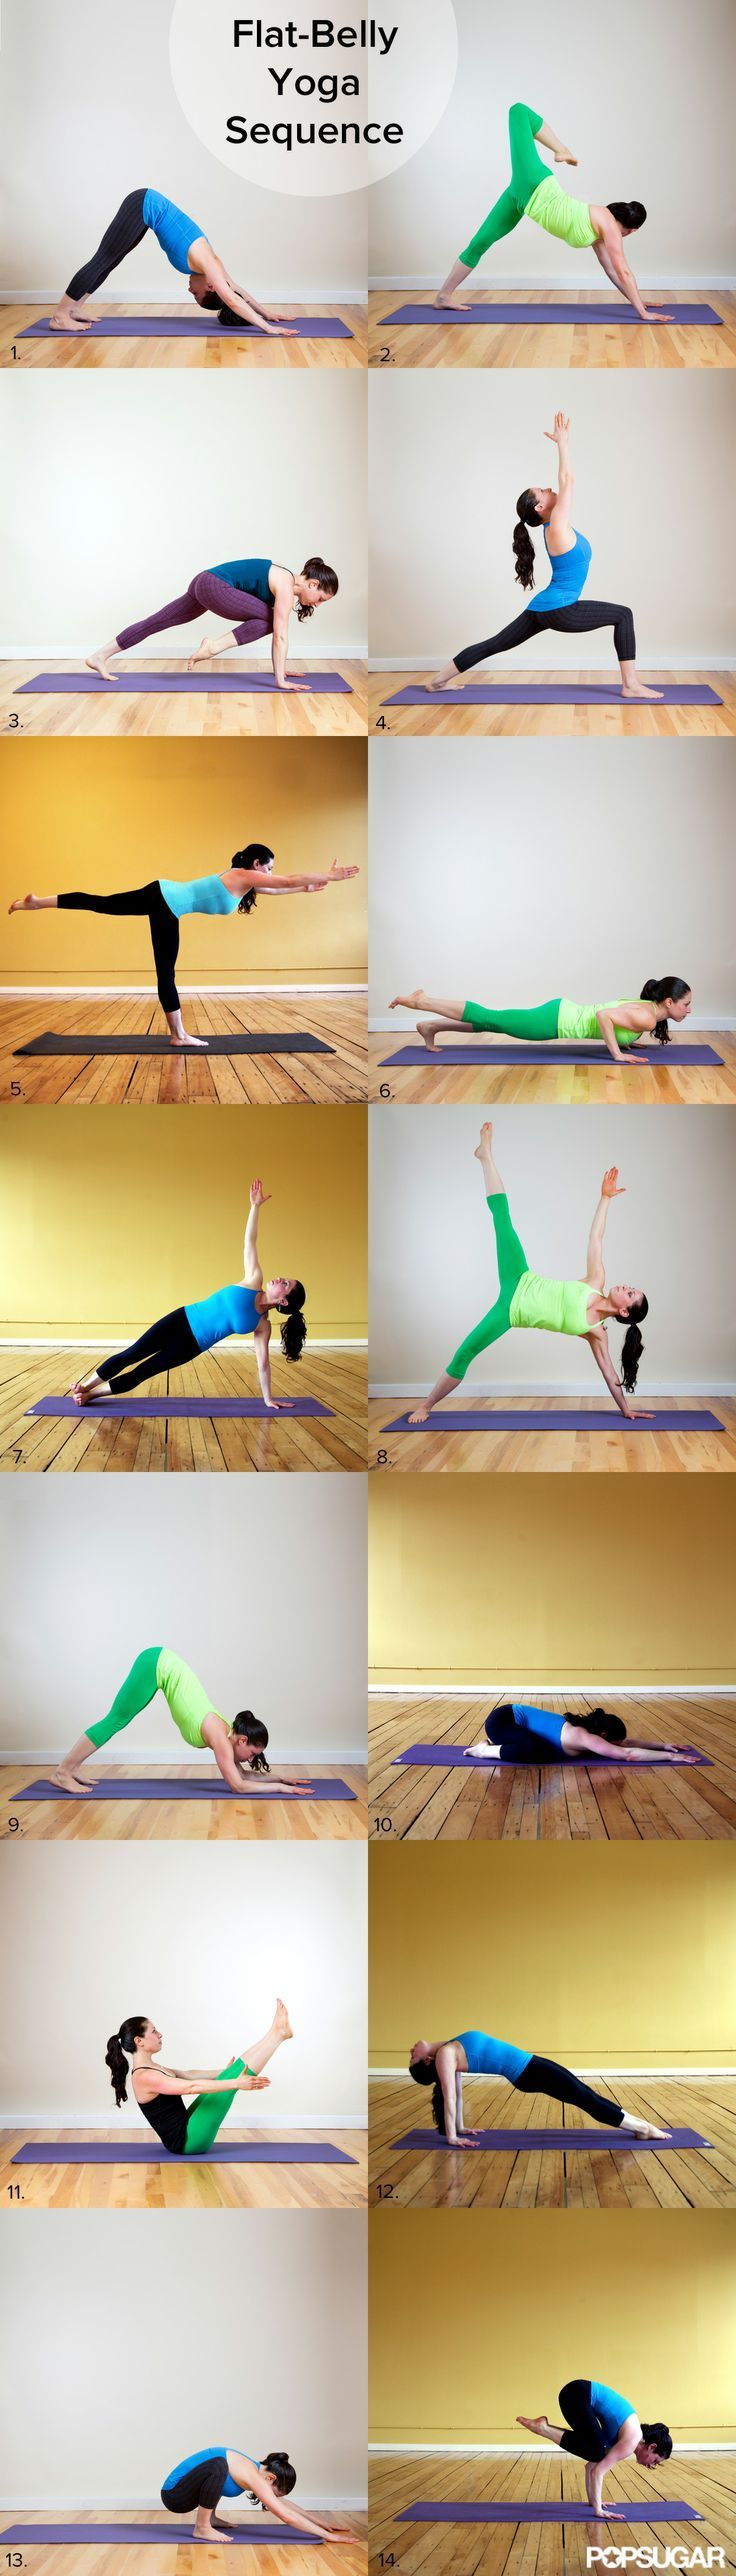 Flat-Belly Yoga Sequence